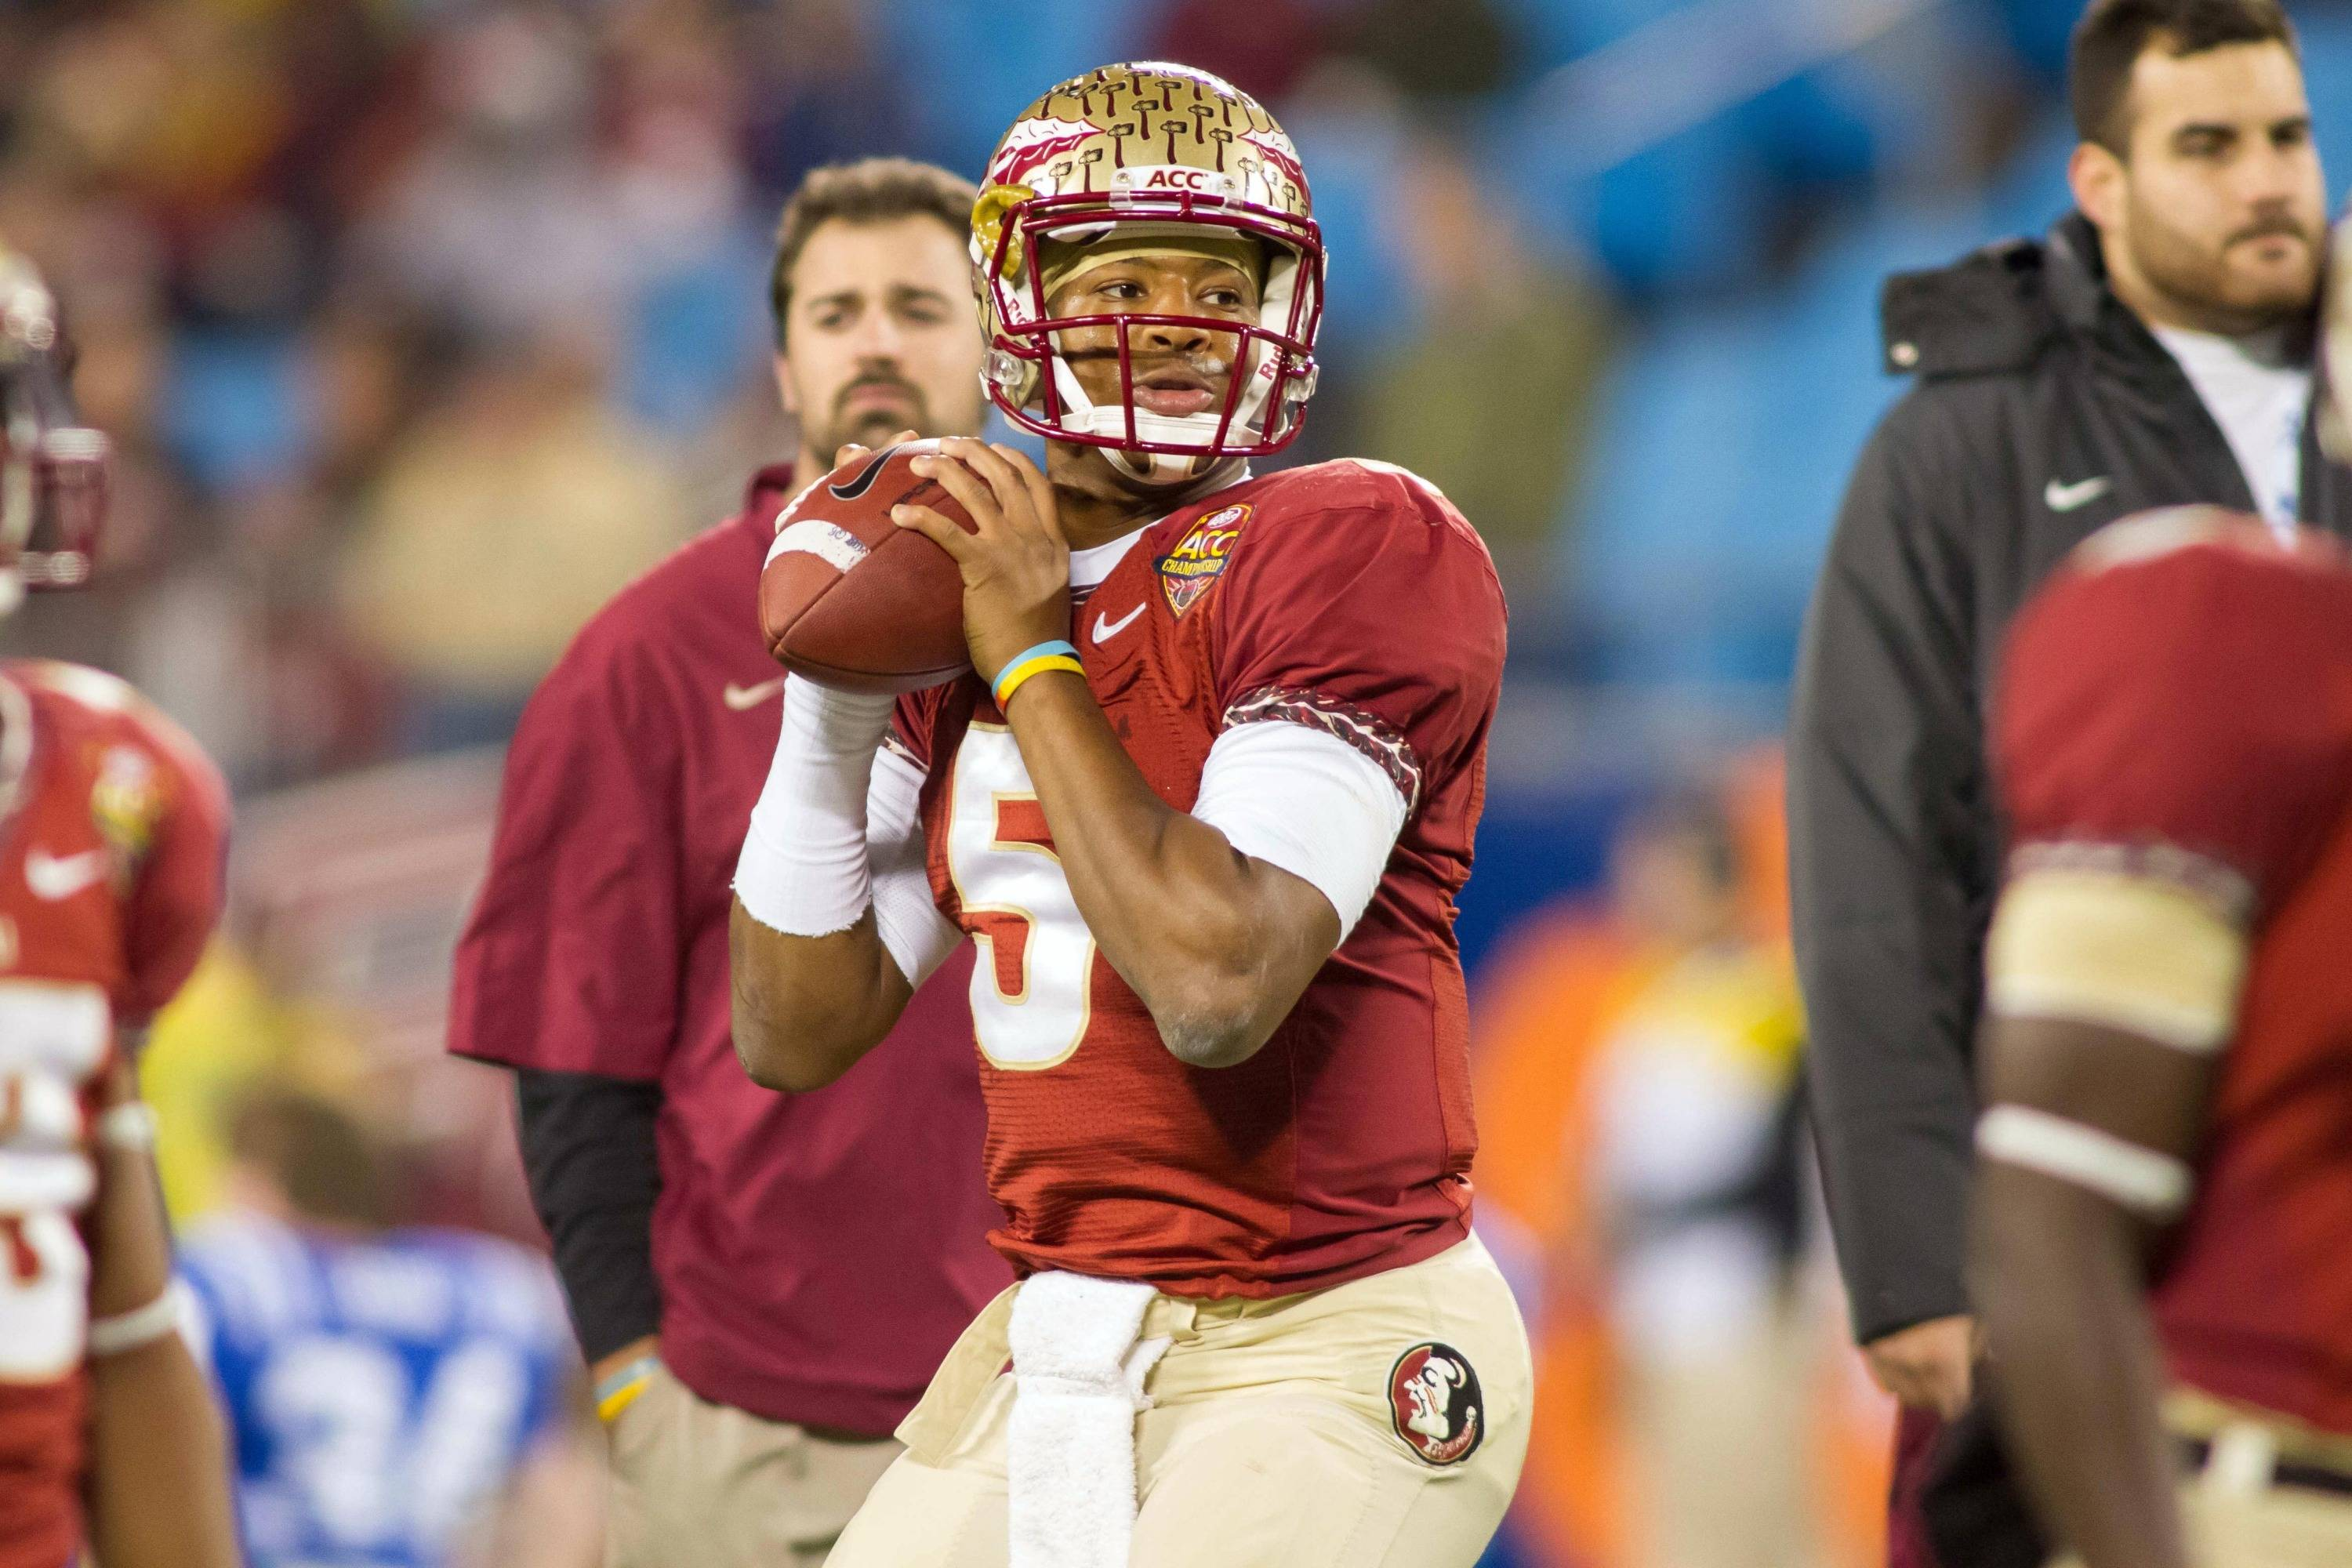 Dec 7, 2013; Charlotte, NC, USA; Florida State Seminoles quarterback Jameis Winston (5) throws a pass before the start of the game against the Duke Blue Devils at Bank of America Stadium. Mandatory Credit: Jeremy Brevard-USA TODAY Sports